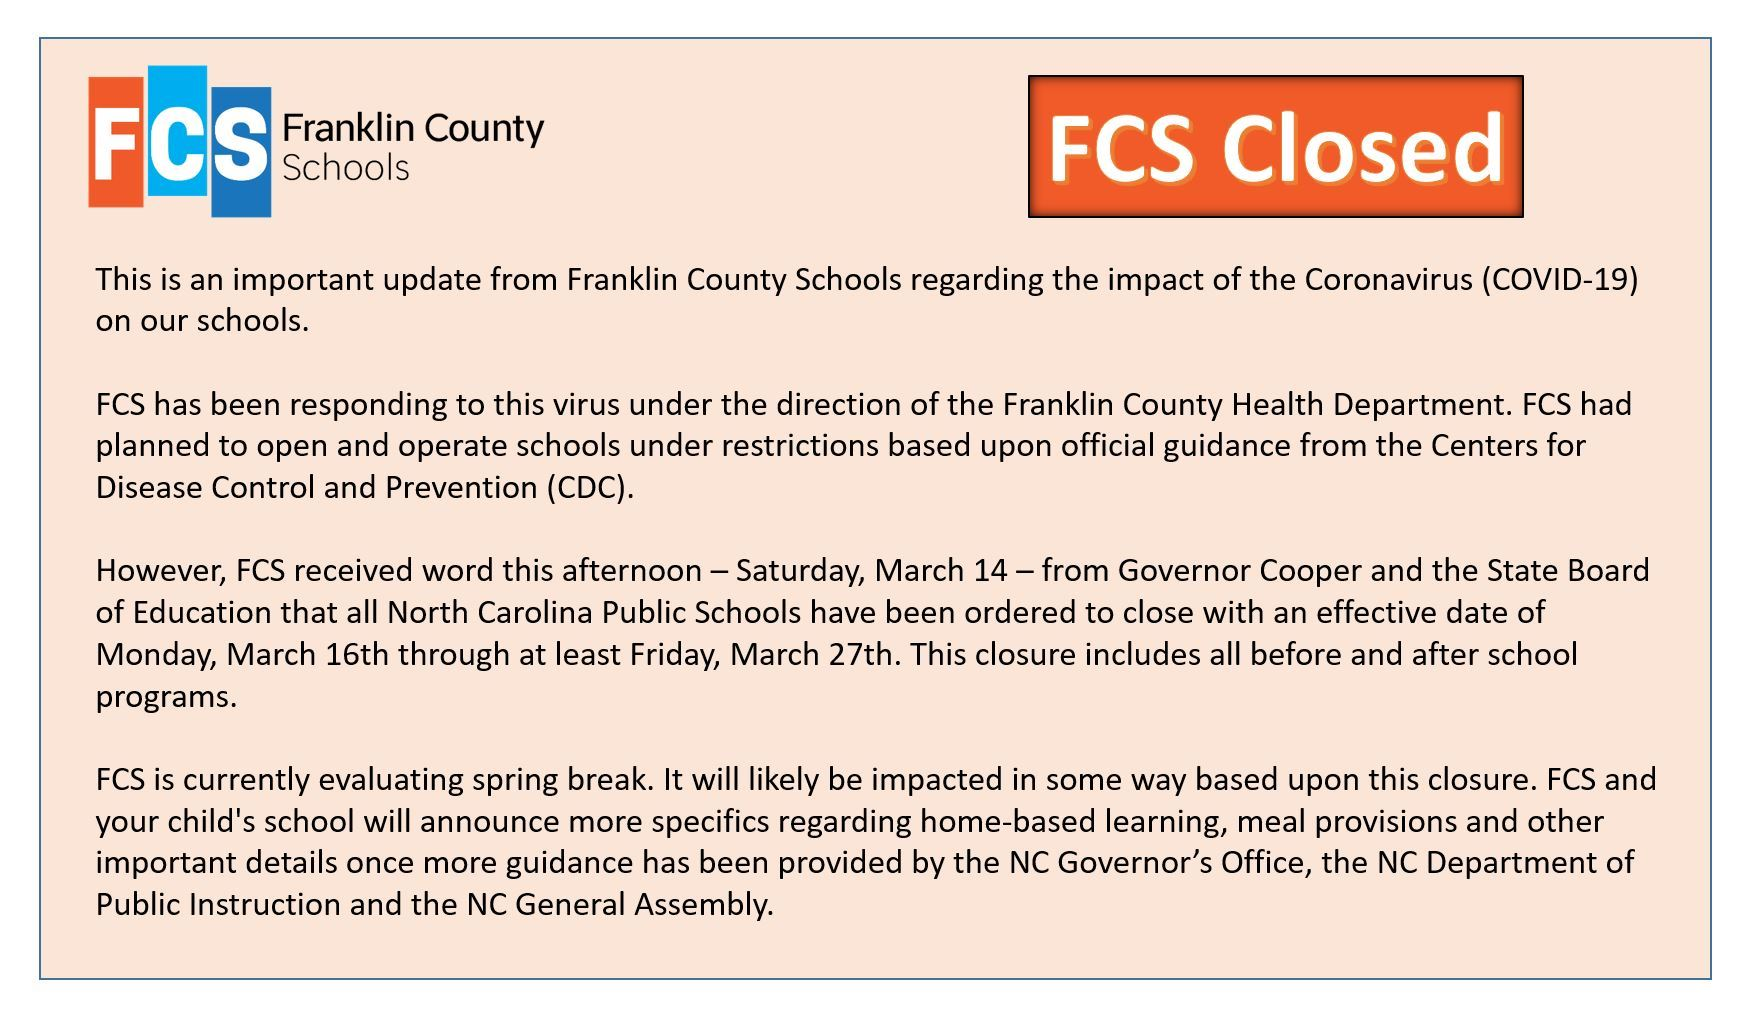 A notice of closure for Franklin County schools